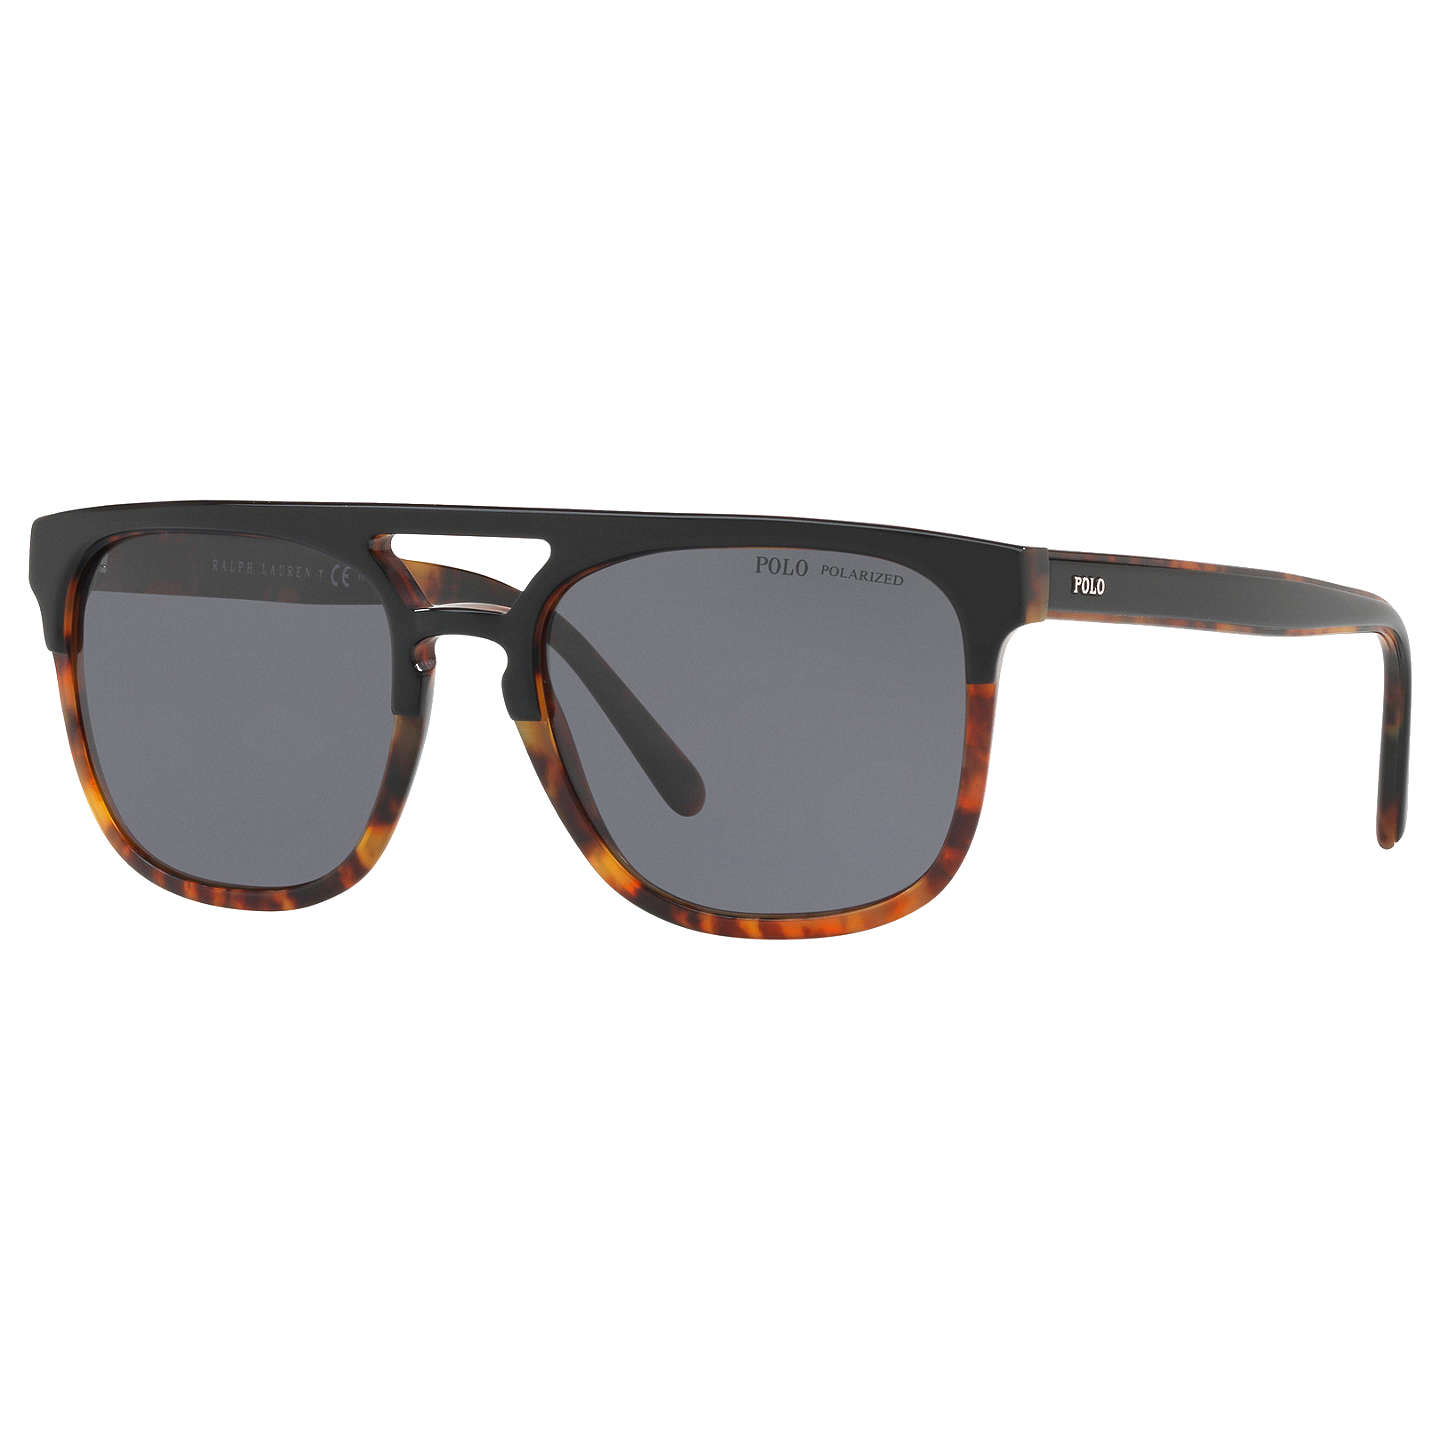 Polo Ralph Lauren Ph4125 Polarised D Frame Sunglasses, Tortoise/Grey by Ralph Lauren